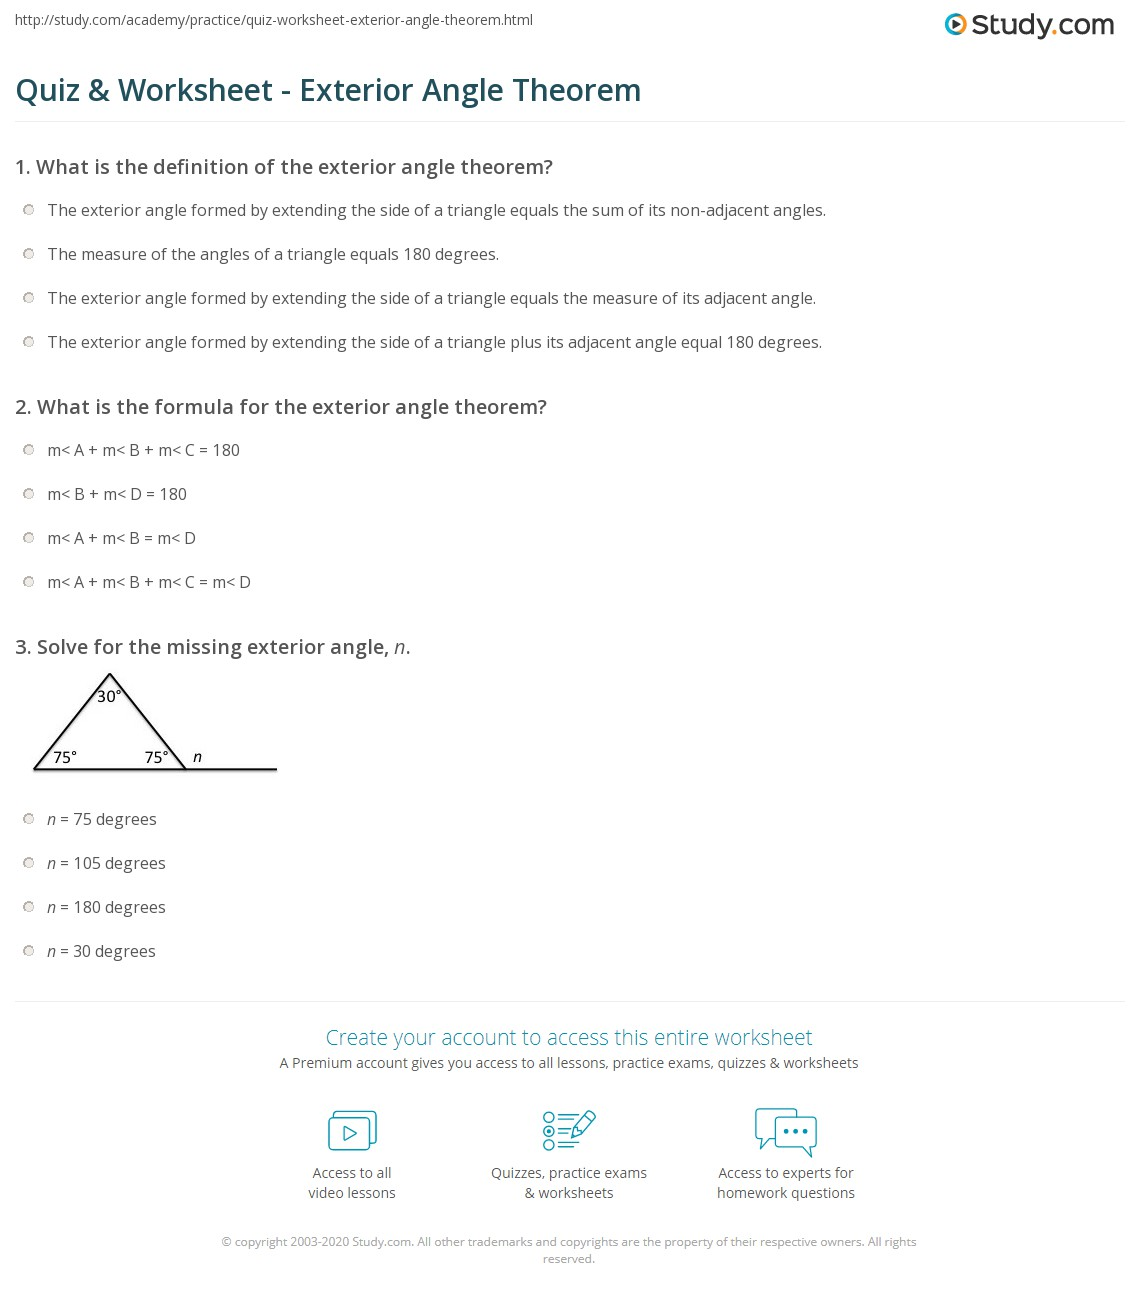 Print Exterior Angle Theorem: Definition U0026 Formula Worksheet